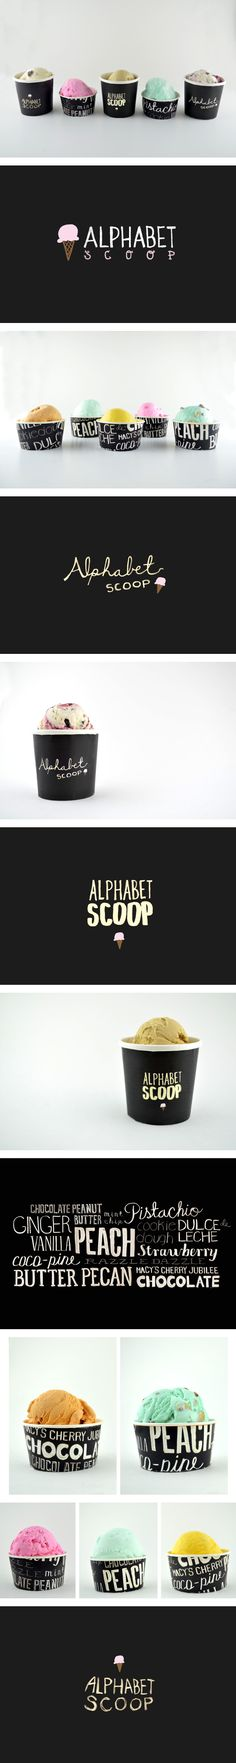 Alphabet Scoop Packaging by Rebecca Lim. I love how the words play off of alphabet soup. Very clever. And I love the idea it's for I've cream! Nice to see how the fonts actually look on the overall product. Ice Cream Packaging, Pretty Packaging, Brand Packaging, Packaging Design, Vintage Logo, Vintage Design, Creative Logo, Restaurant Branding, Identity Design